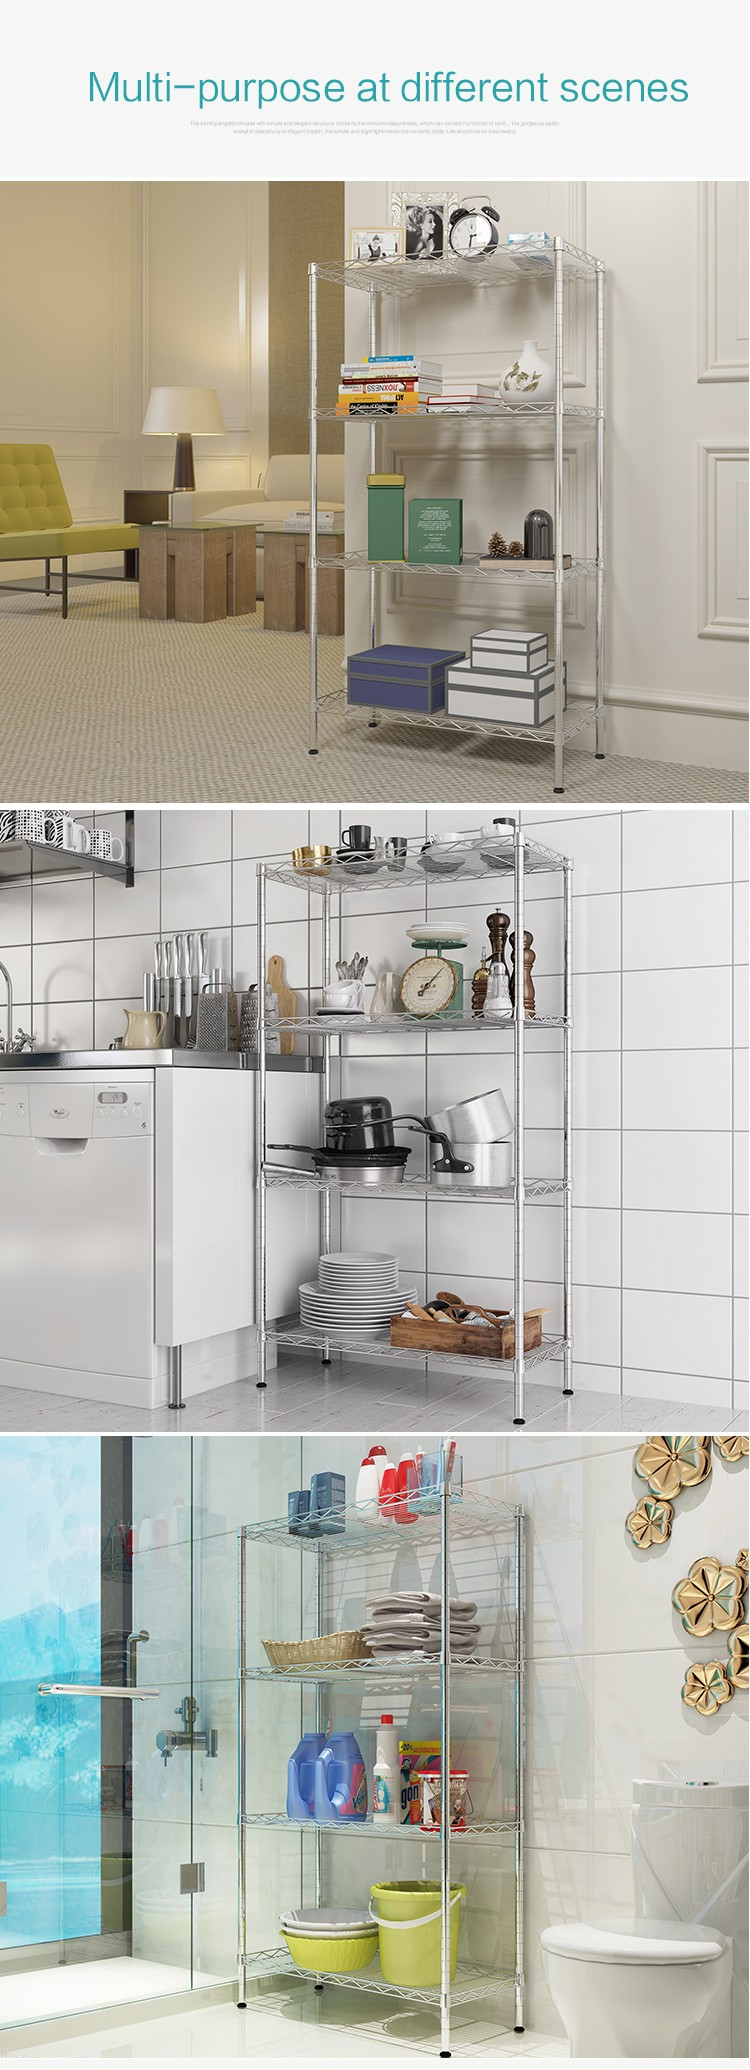 XM_202 kitchen wire shelving storage microwave oven rack metal book shelf 4 Tier Adjustable Multi-function sundries organizer